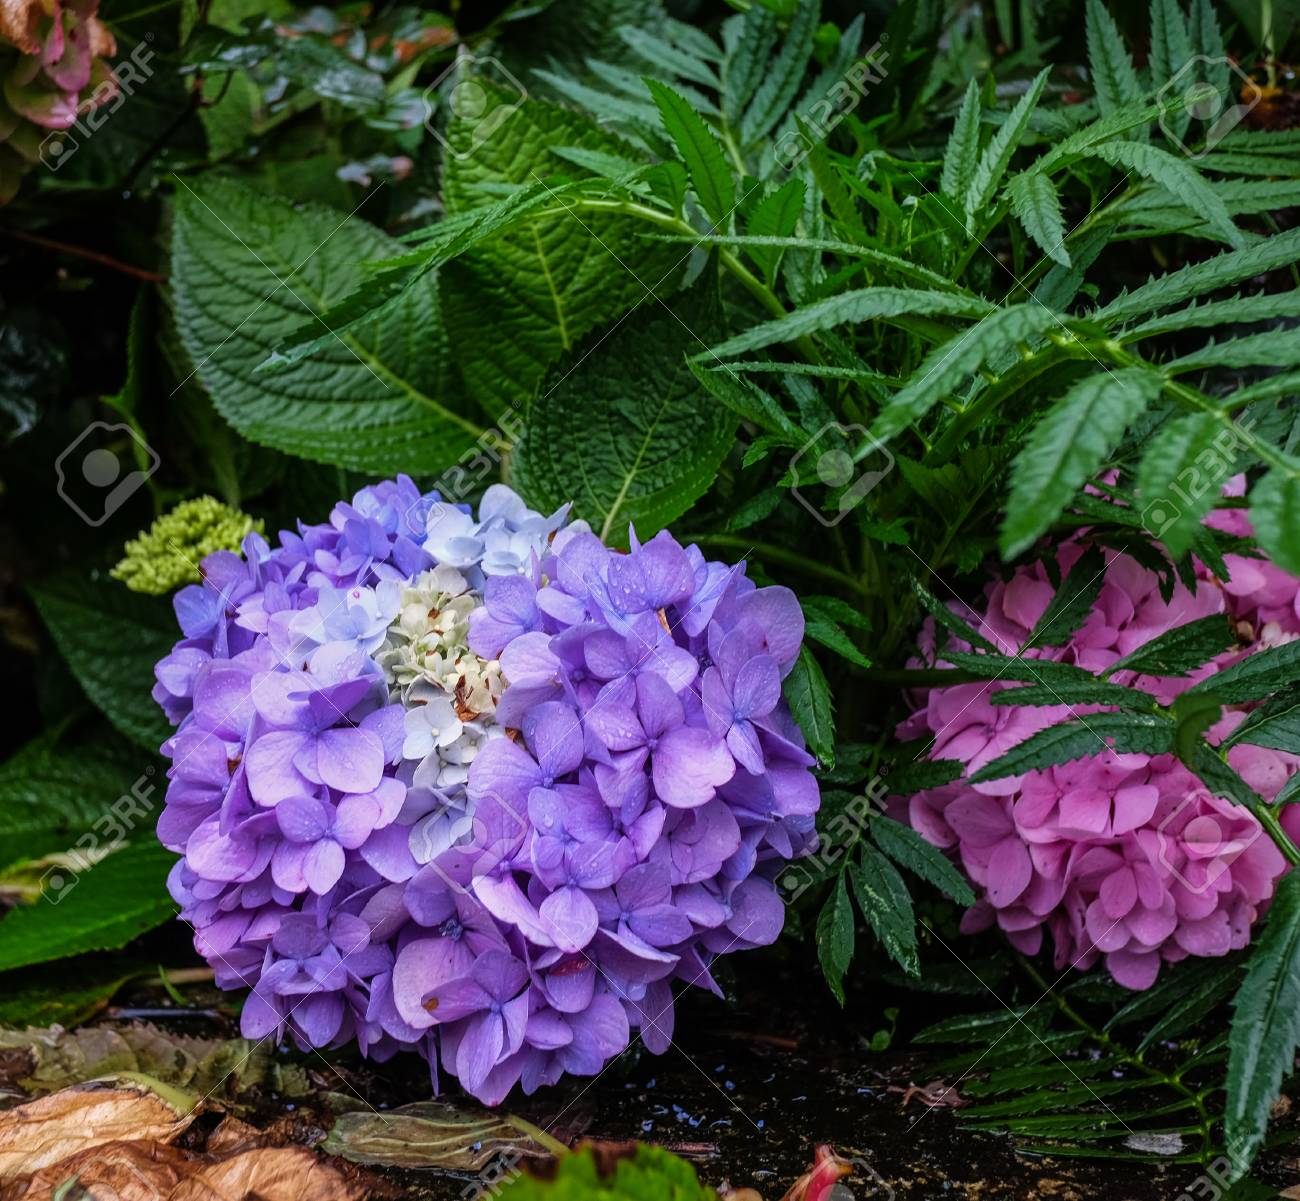 Beautiful Purple Hydrangea Macrophylla Flowers At Garden In Spring